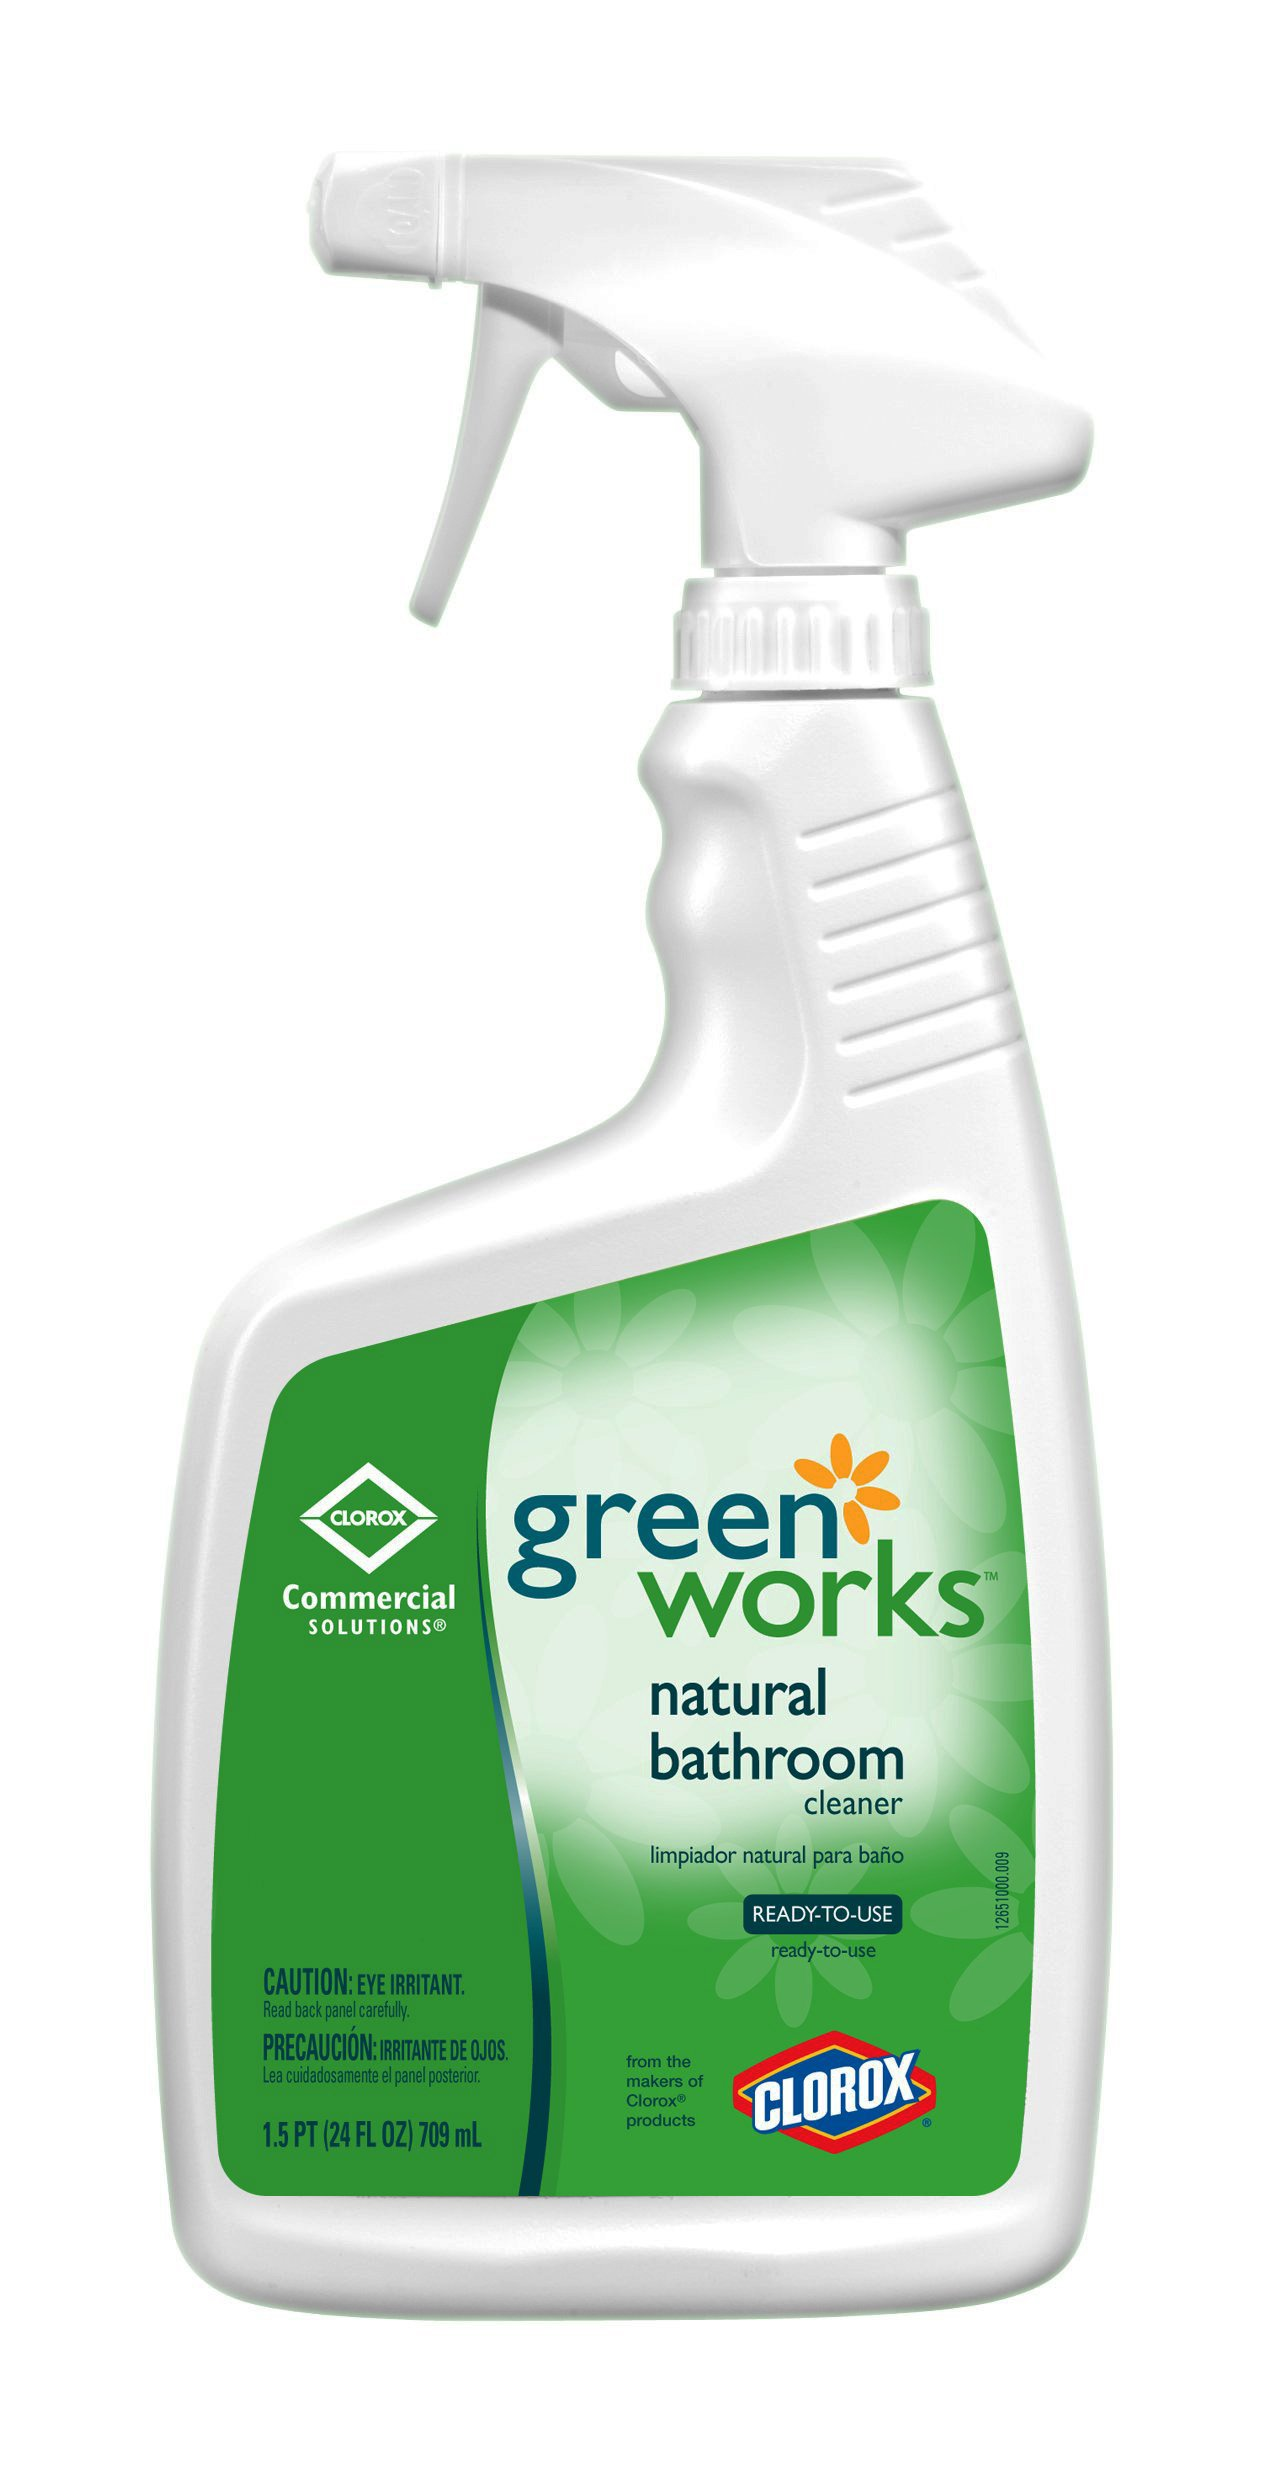 Clorox Green Works 00452 Commercial Solutions General Bathroom Cleaner Spray, 24-Ounce